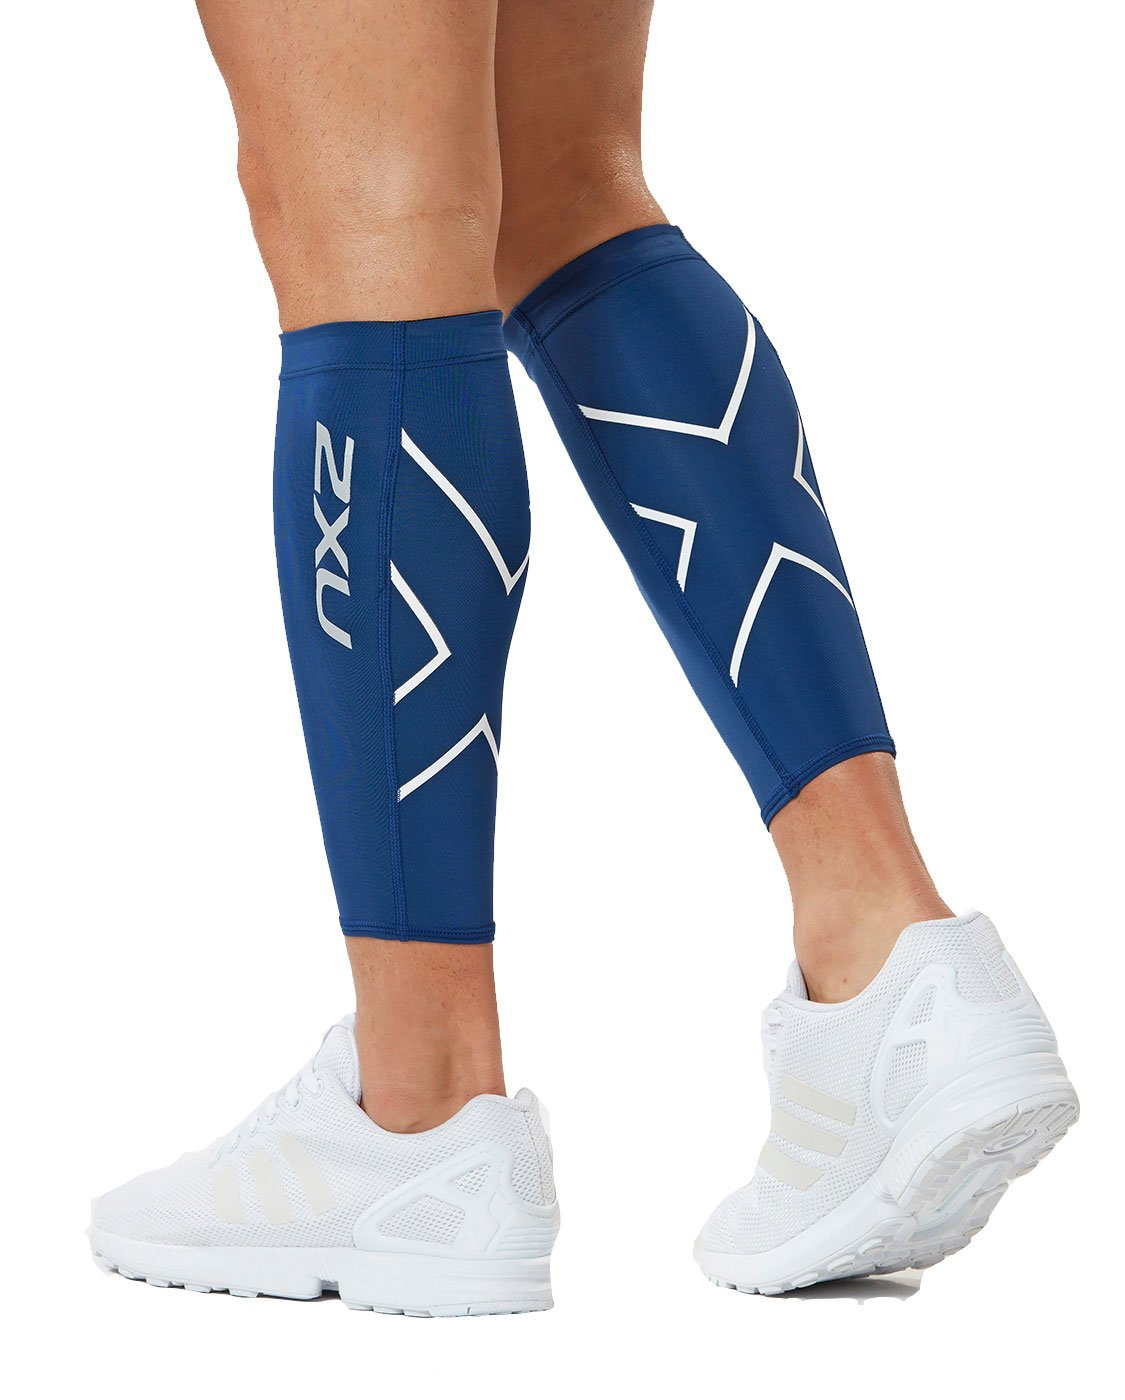 2XU Compression Calf Guards, Navy/White, Large